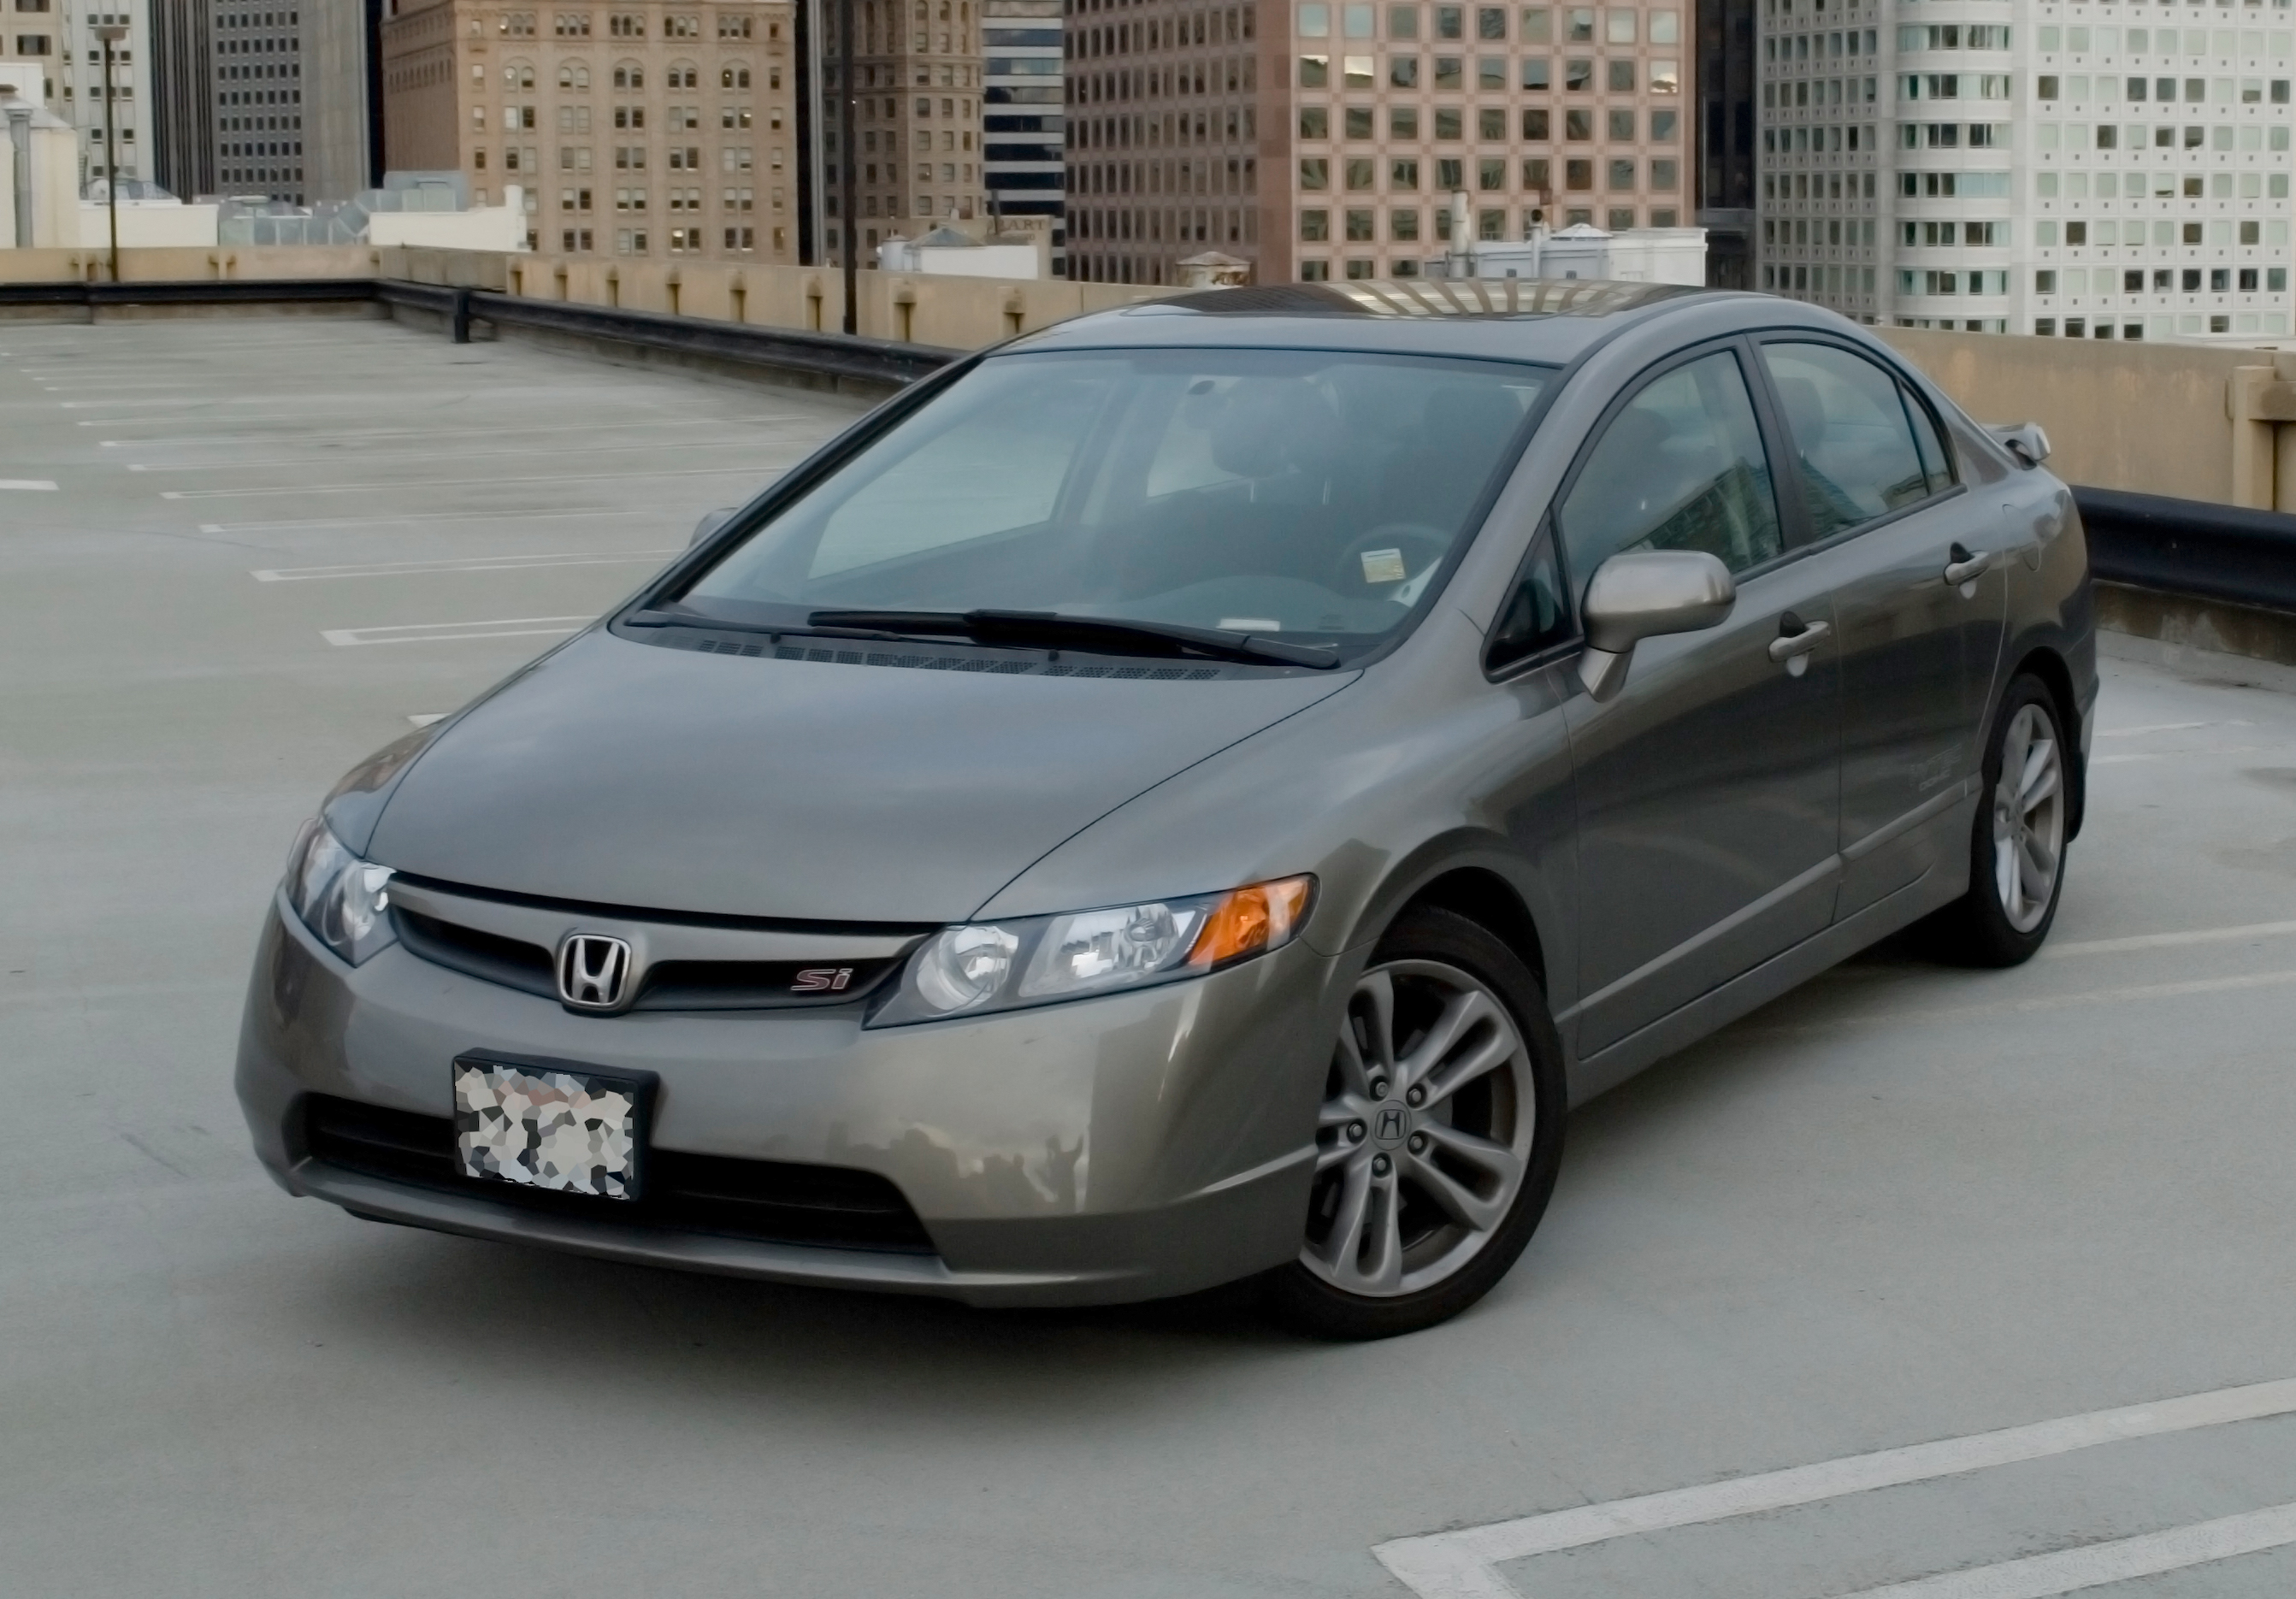 Honda Civic Si #12